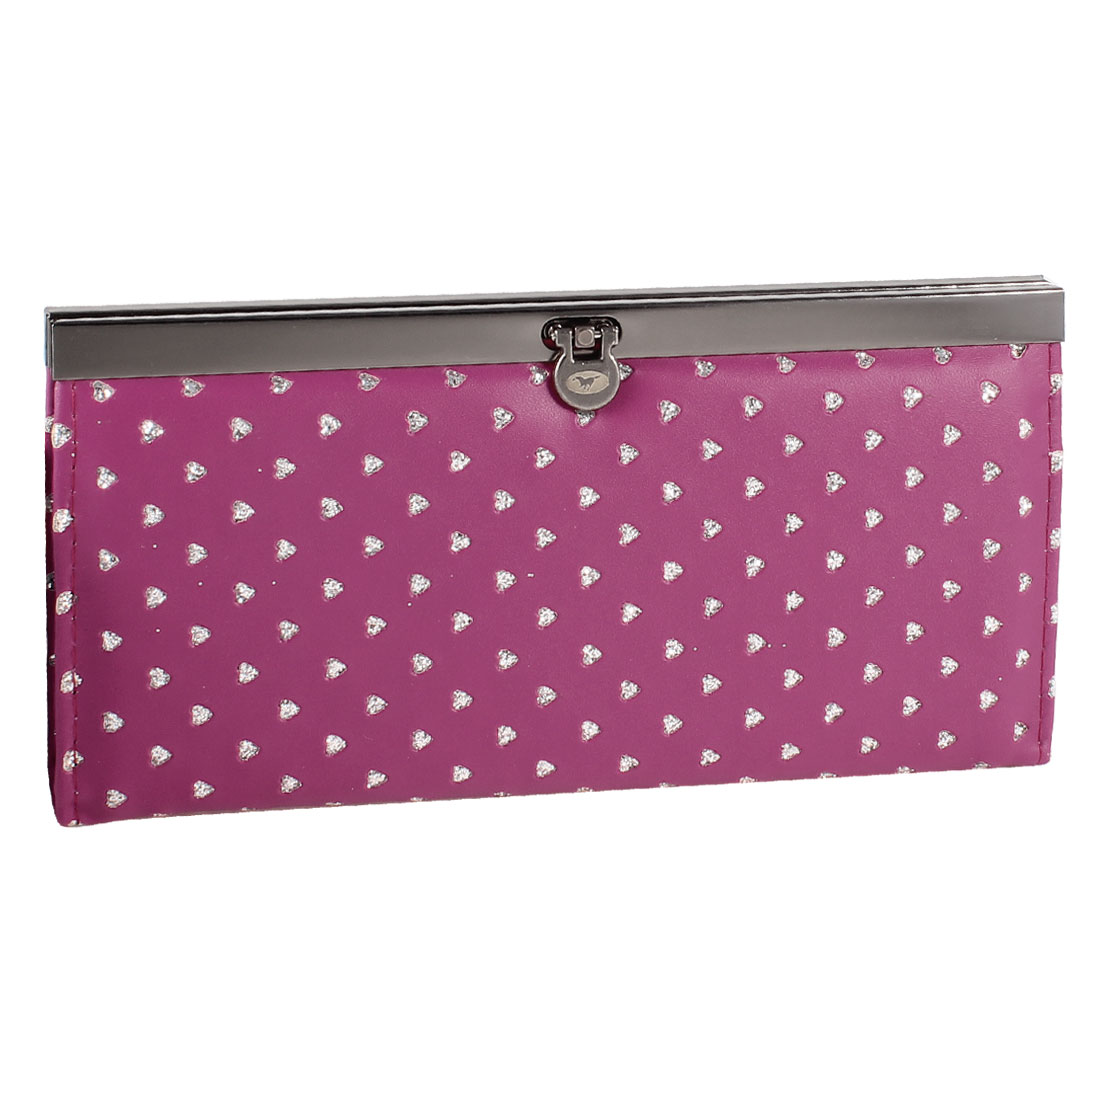 Lady Hearts Printed Flip Lock Closure Faux Leather Wallet Purse Fuchsia